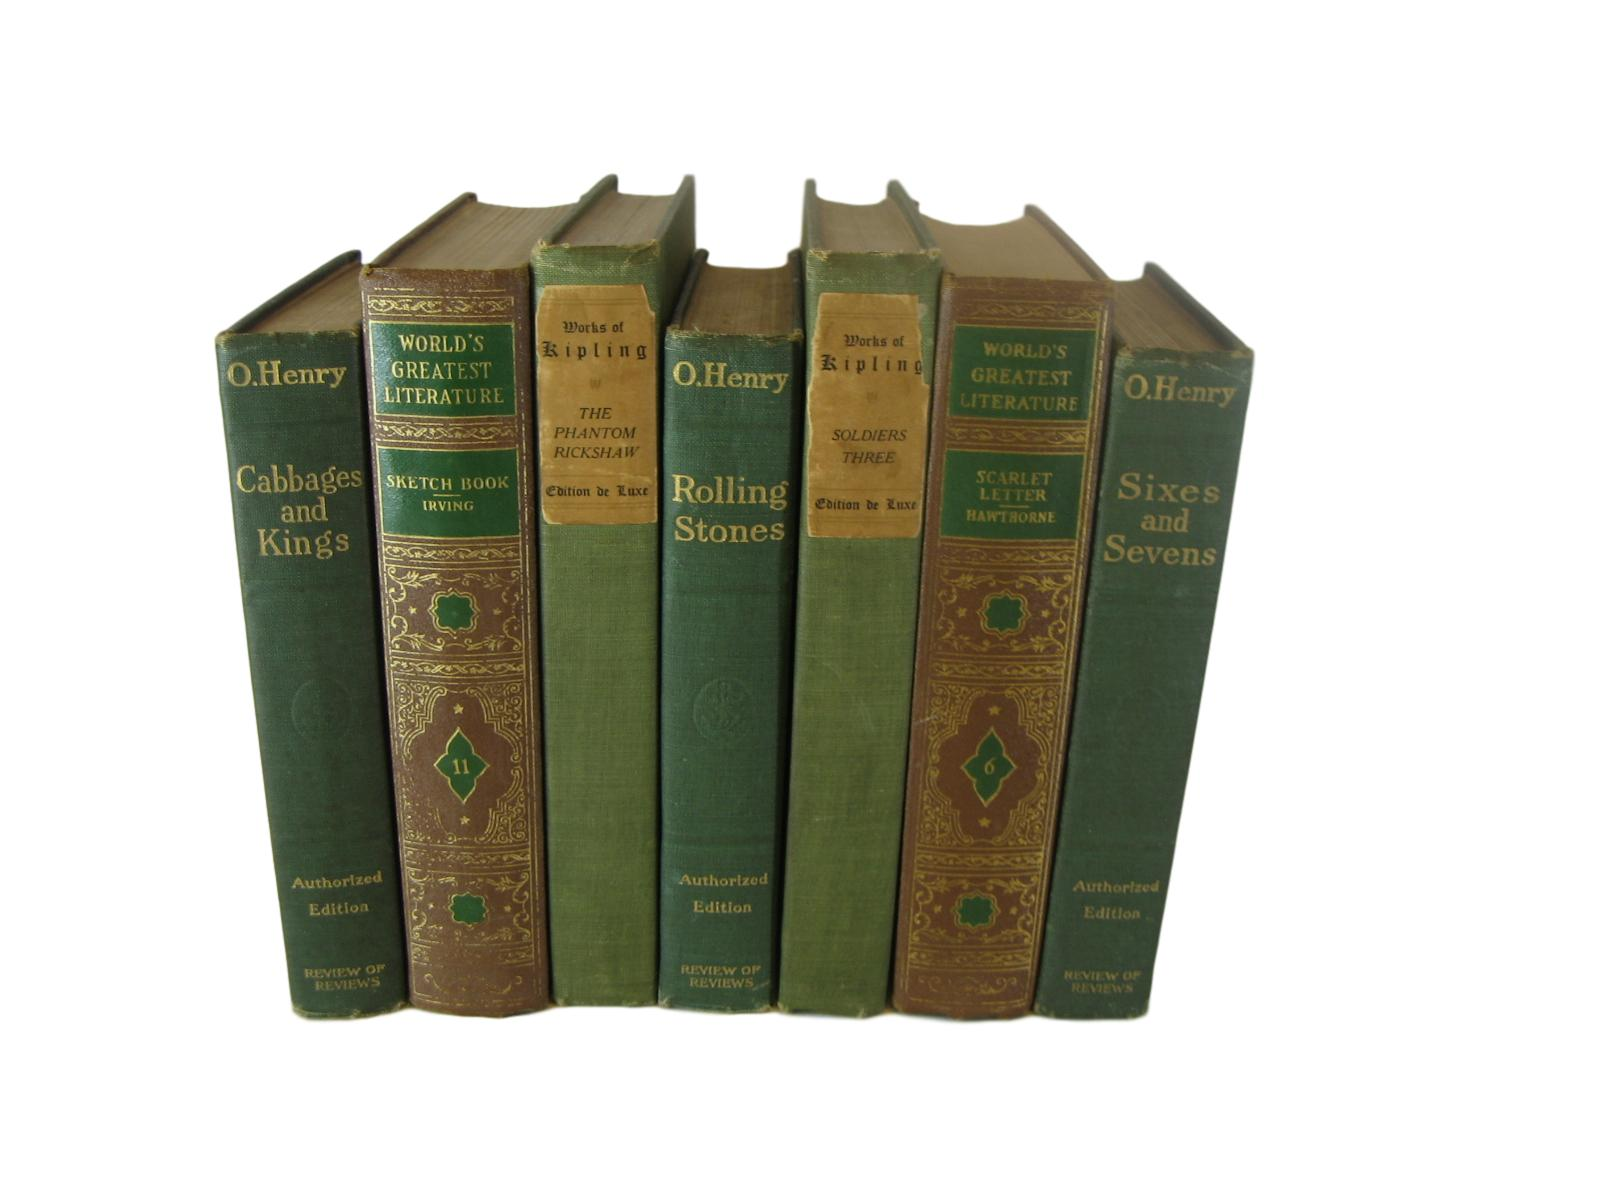 Brown and Green Decorative Books by Color for Bookshelf Decor, S/7 - Decades of Vintage